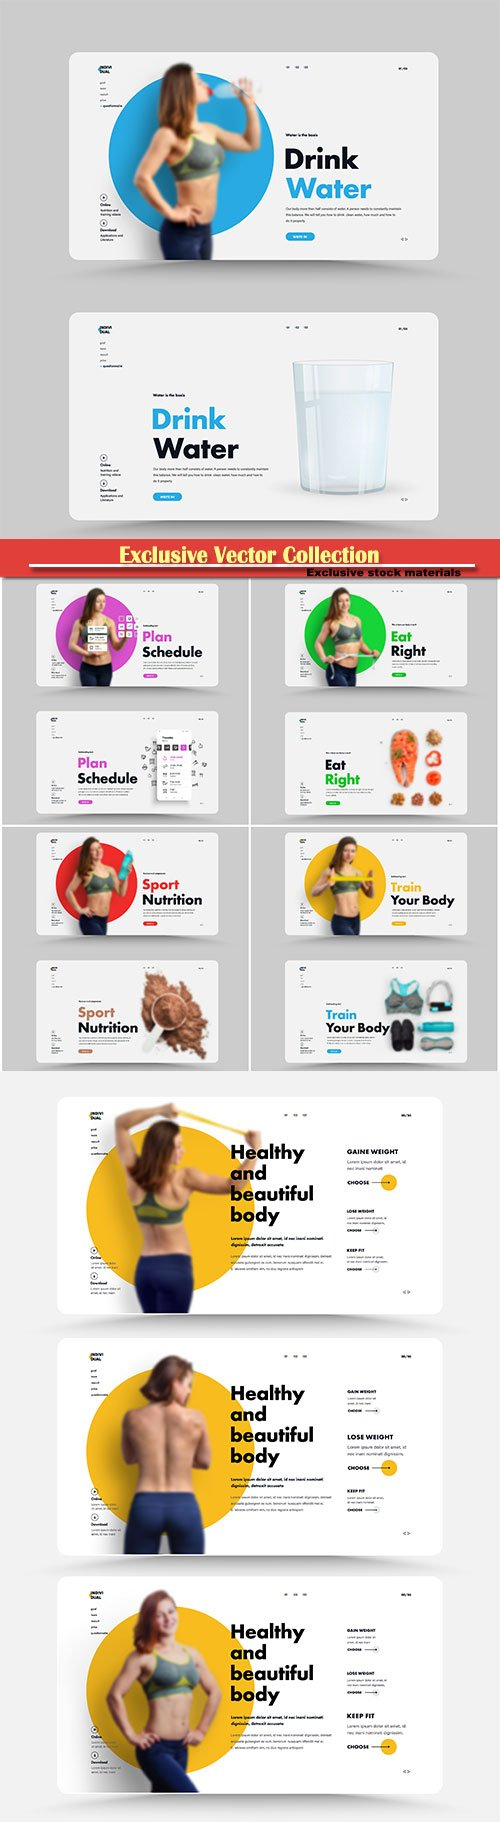 Design is the main page of the website for a sports trainer, nutritionist or gym